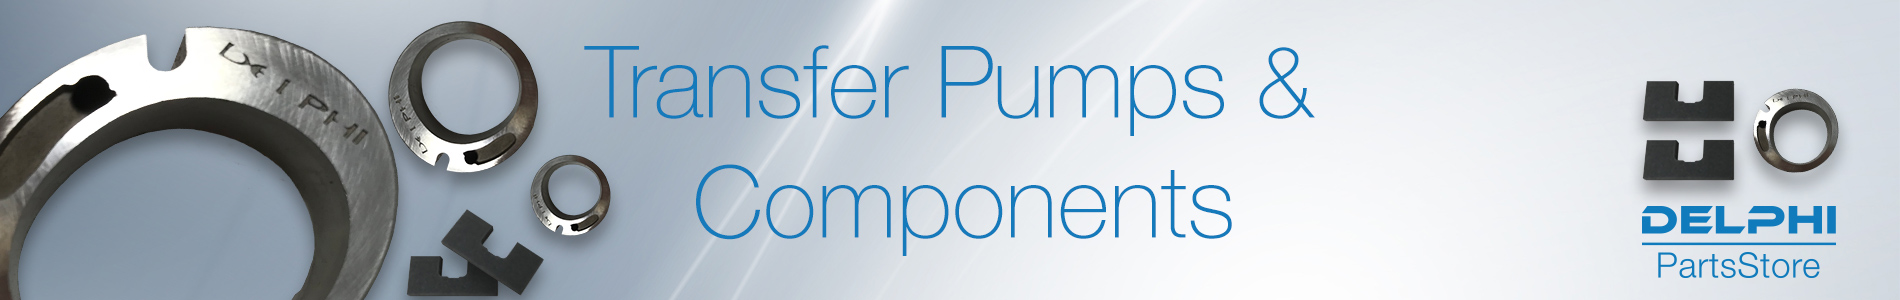 Transfer Pumps & Components